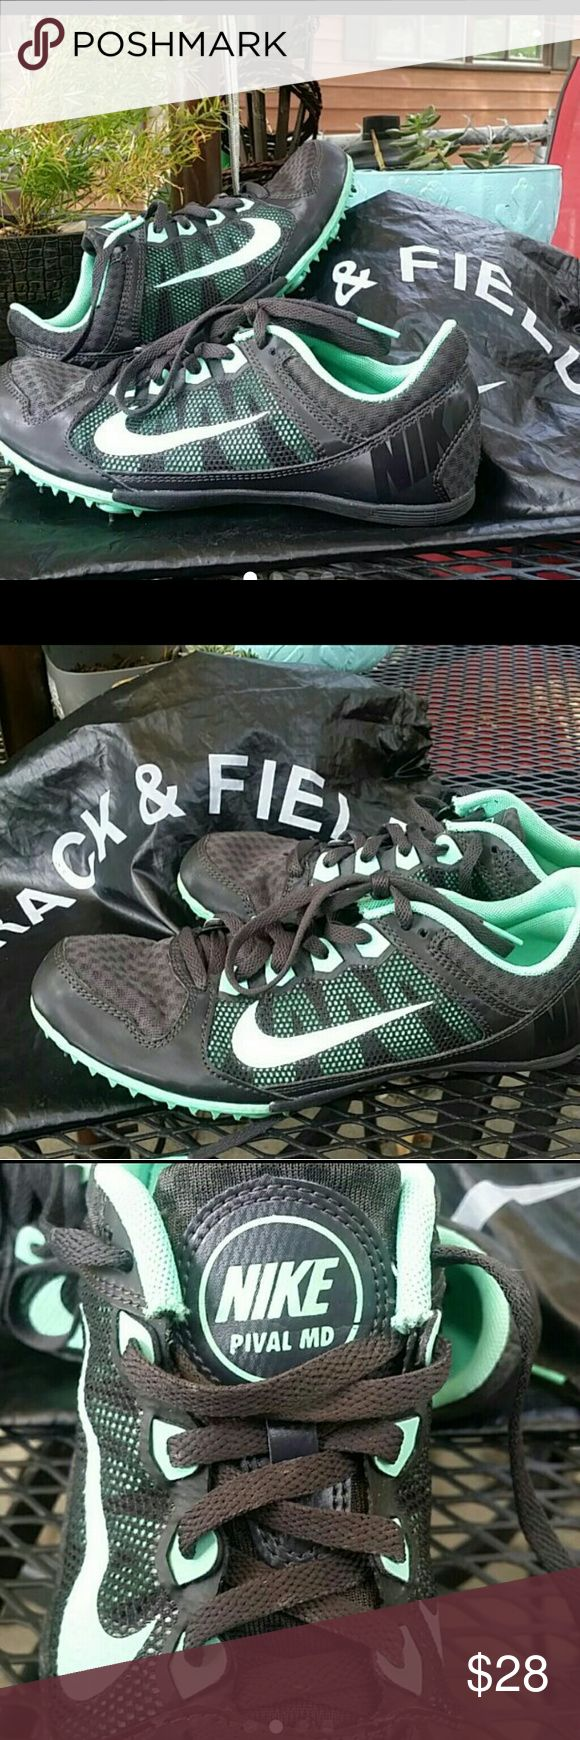 Womens Nike track and field spikes 7.5 Womens Nike track and field shoes in size 7.5.  In a aqua and black.  Great shoes with spikes and spike turner.  Bag included Nike Shoes Athletic Shoes